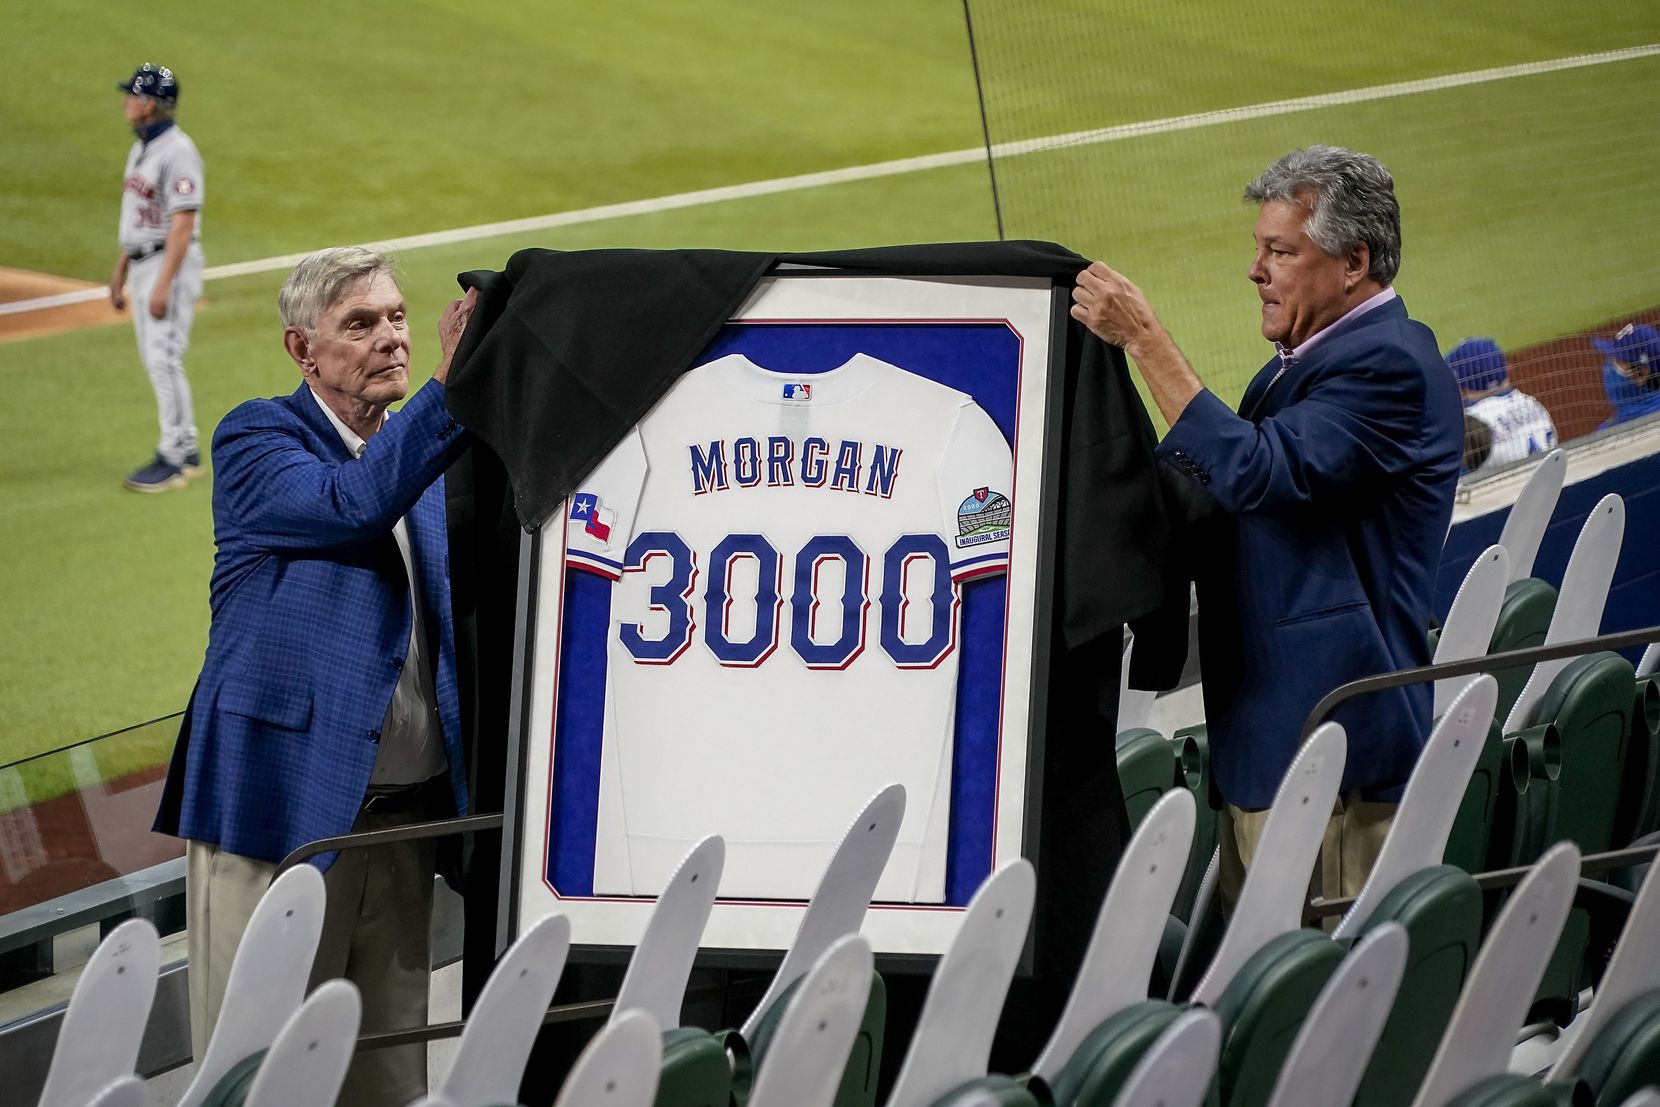 Texas Rangers co-chairman and managing partner Ray C. Davis (left) and chairman, ownership committee and chief operating officer Neil Leibman unveil a framed jersey commemorating public address announcer Chuck Morgan's 3000th consecutive game after the fifth inning between the Texas Rangers and the Houston Astros at Globe Life Field on Saturday, Sept. 26, 2020.